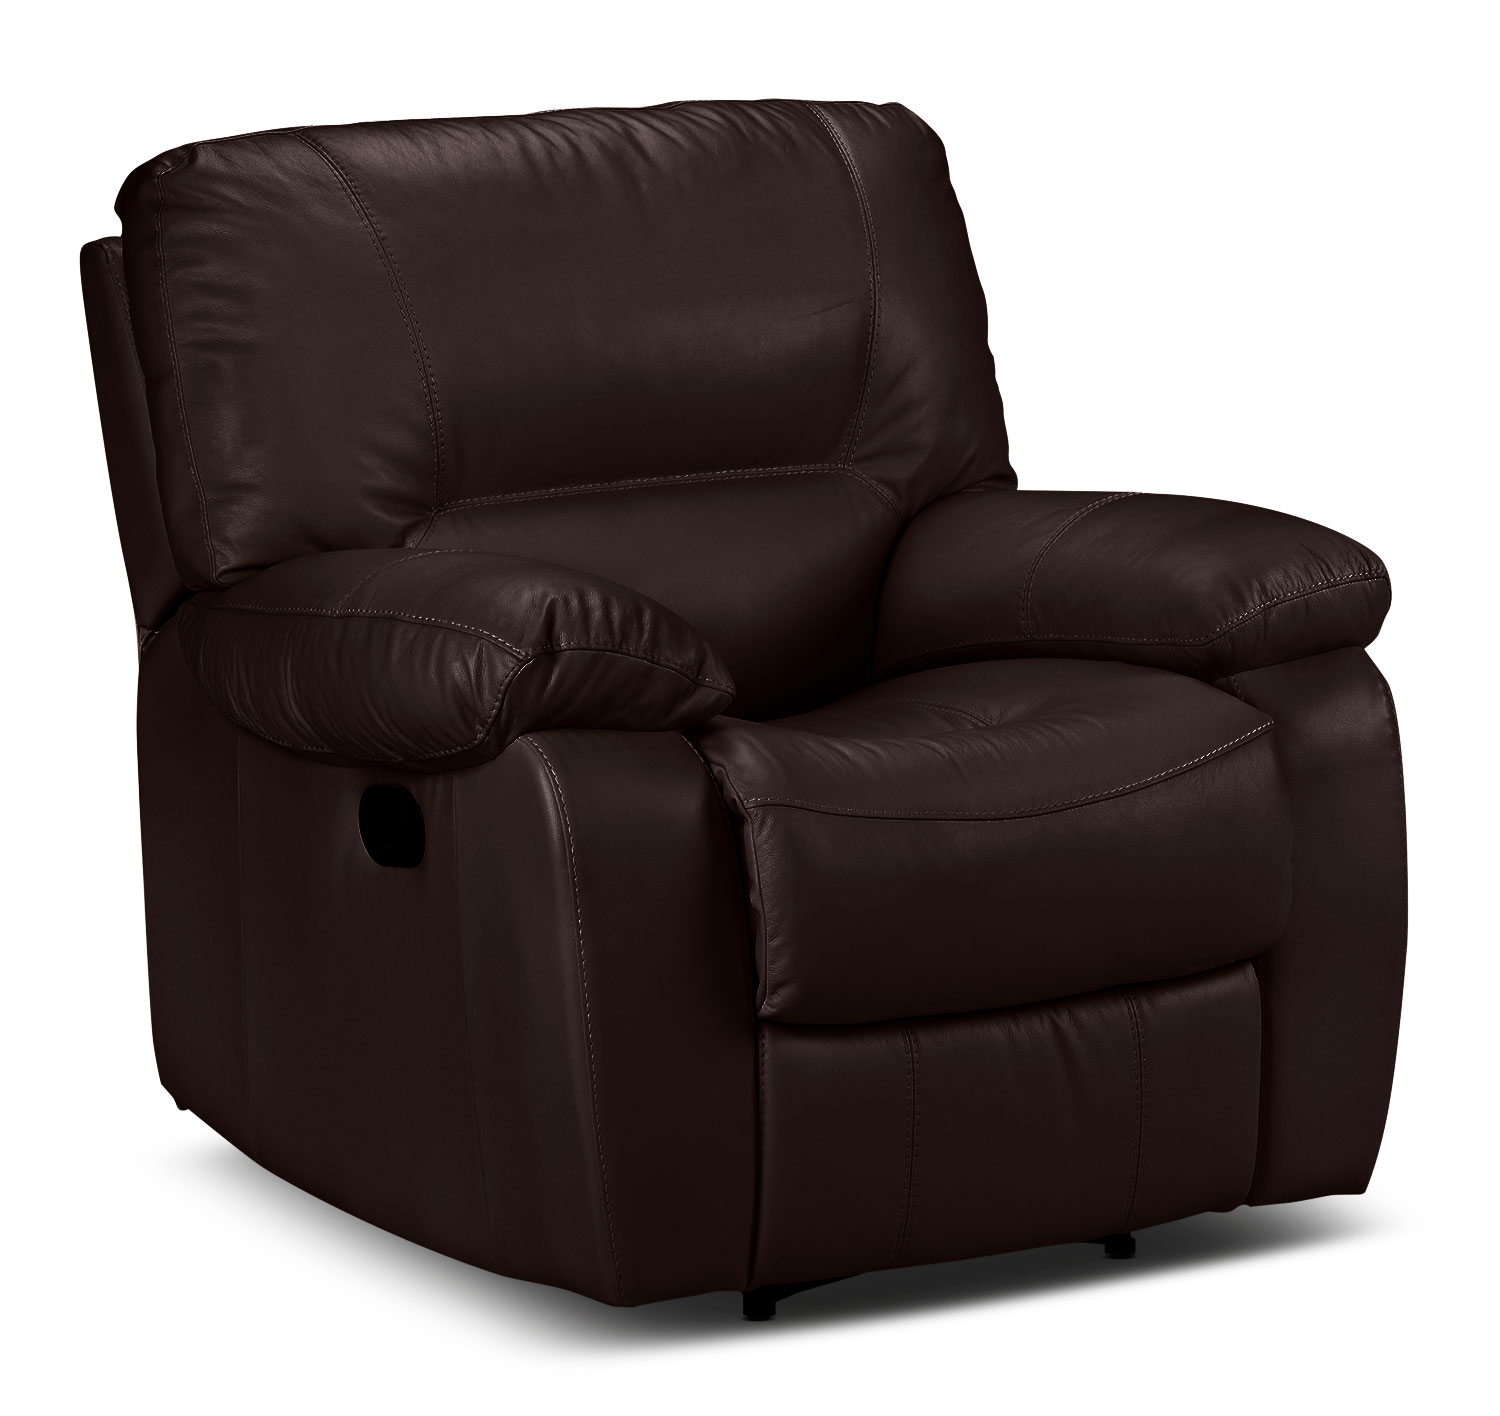 Piermont Recliner - Chocolate